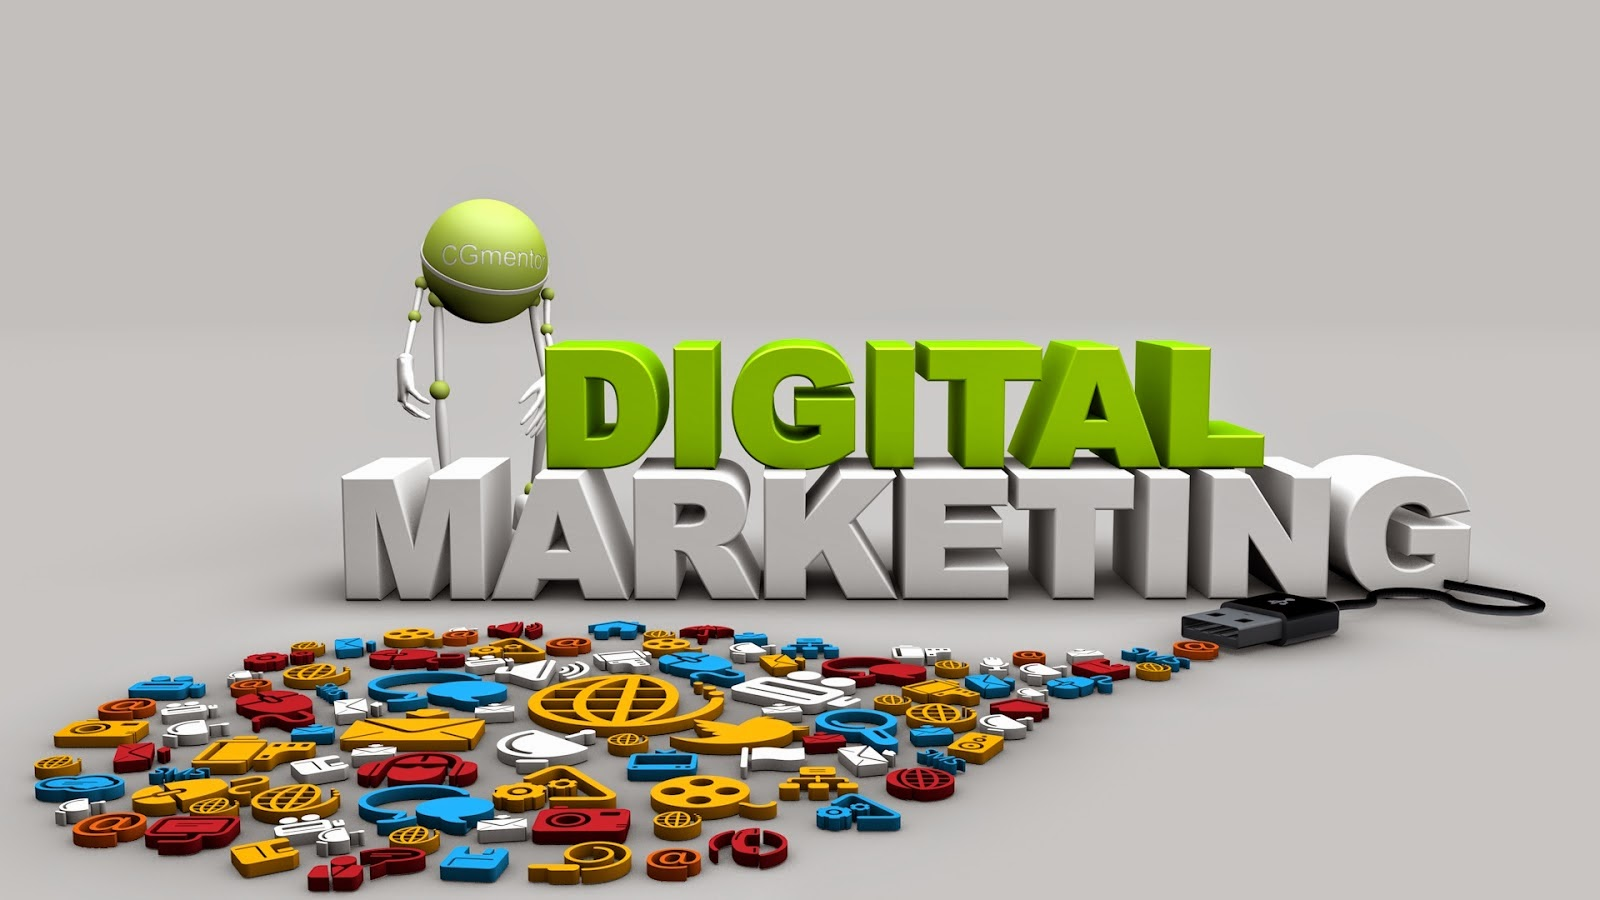 Digital Marketing - Benefits - Image 1